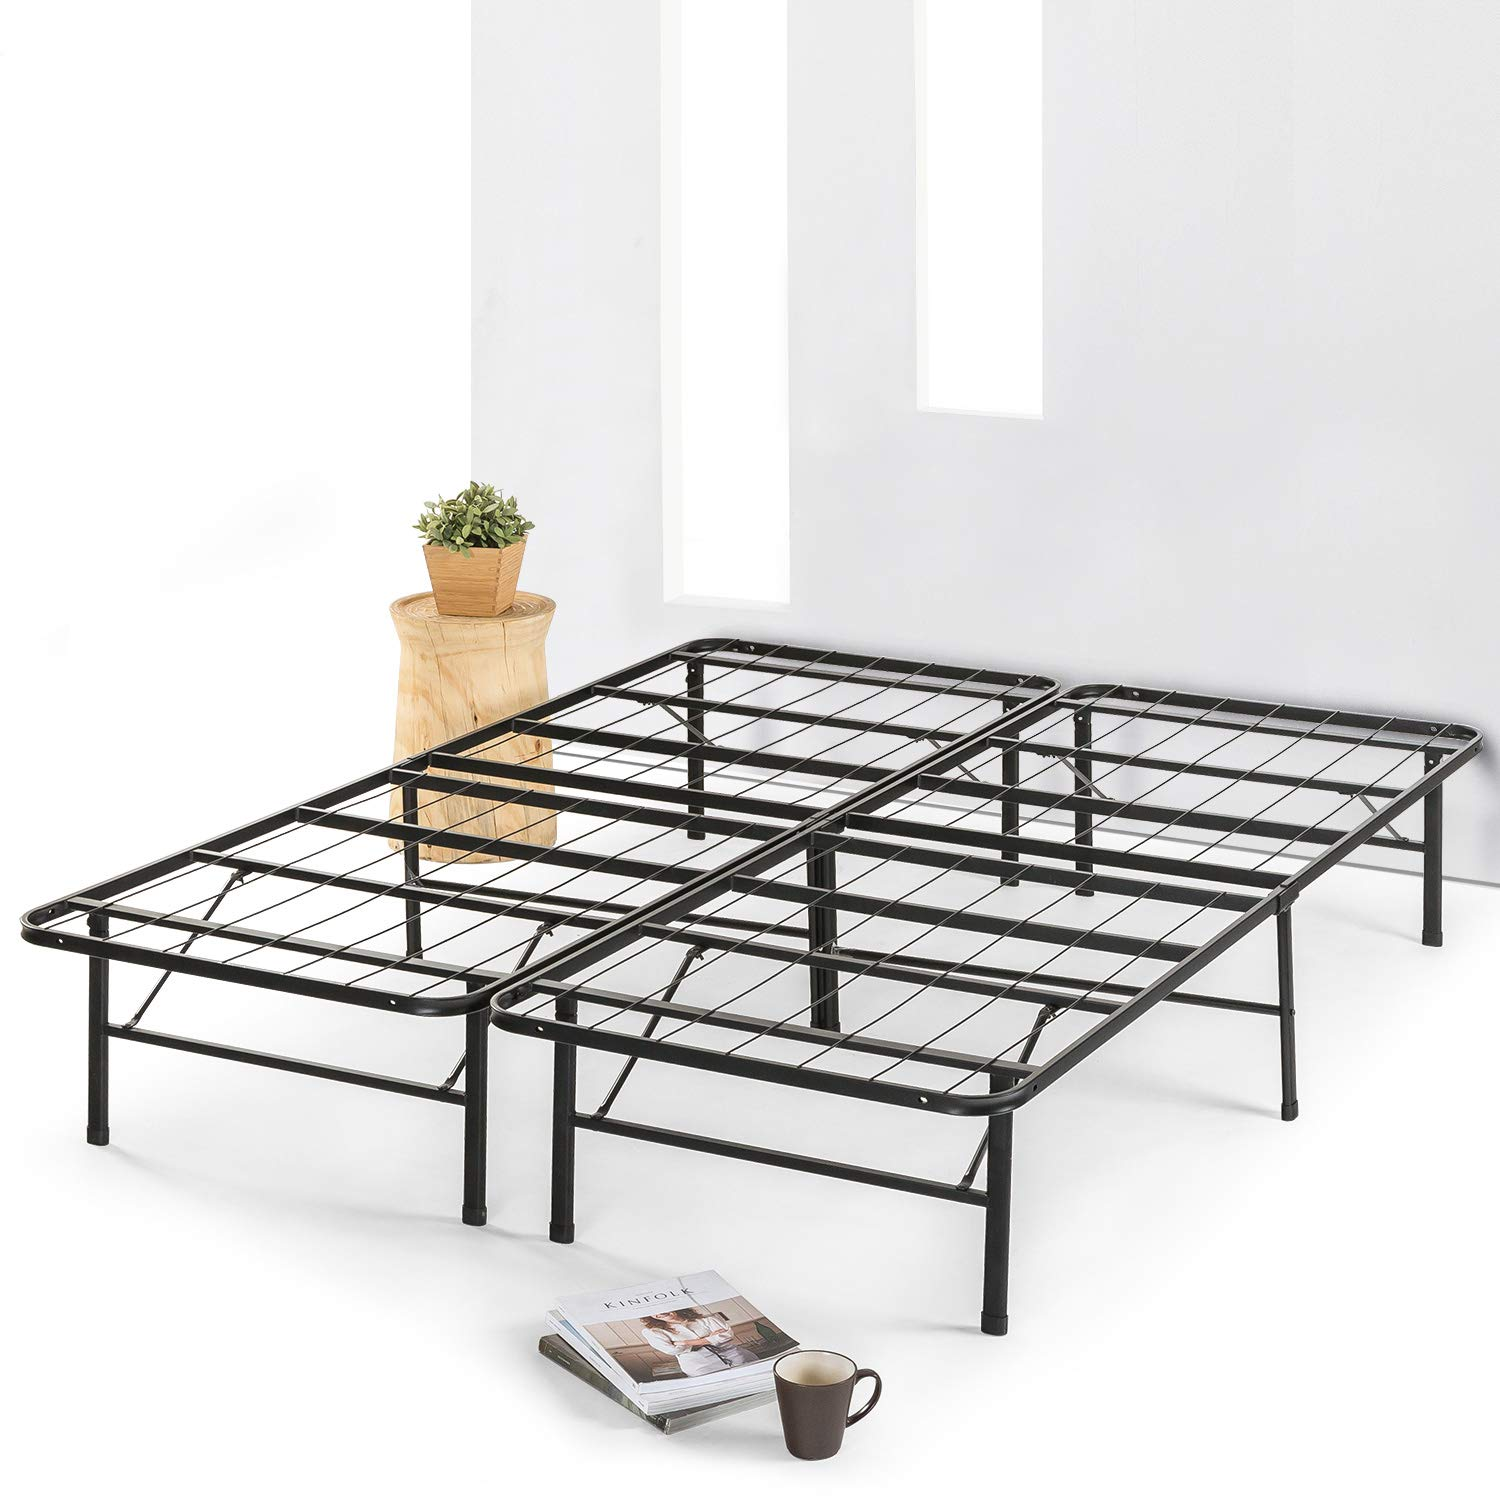 Best Price Mattress Twin Frame-14 Metal Mattress Foundation with Steel Slats for Platform Bed Frame No Box Spring Needed , Twin, Black